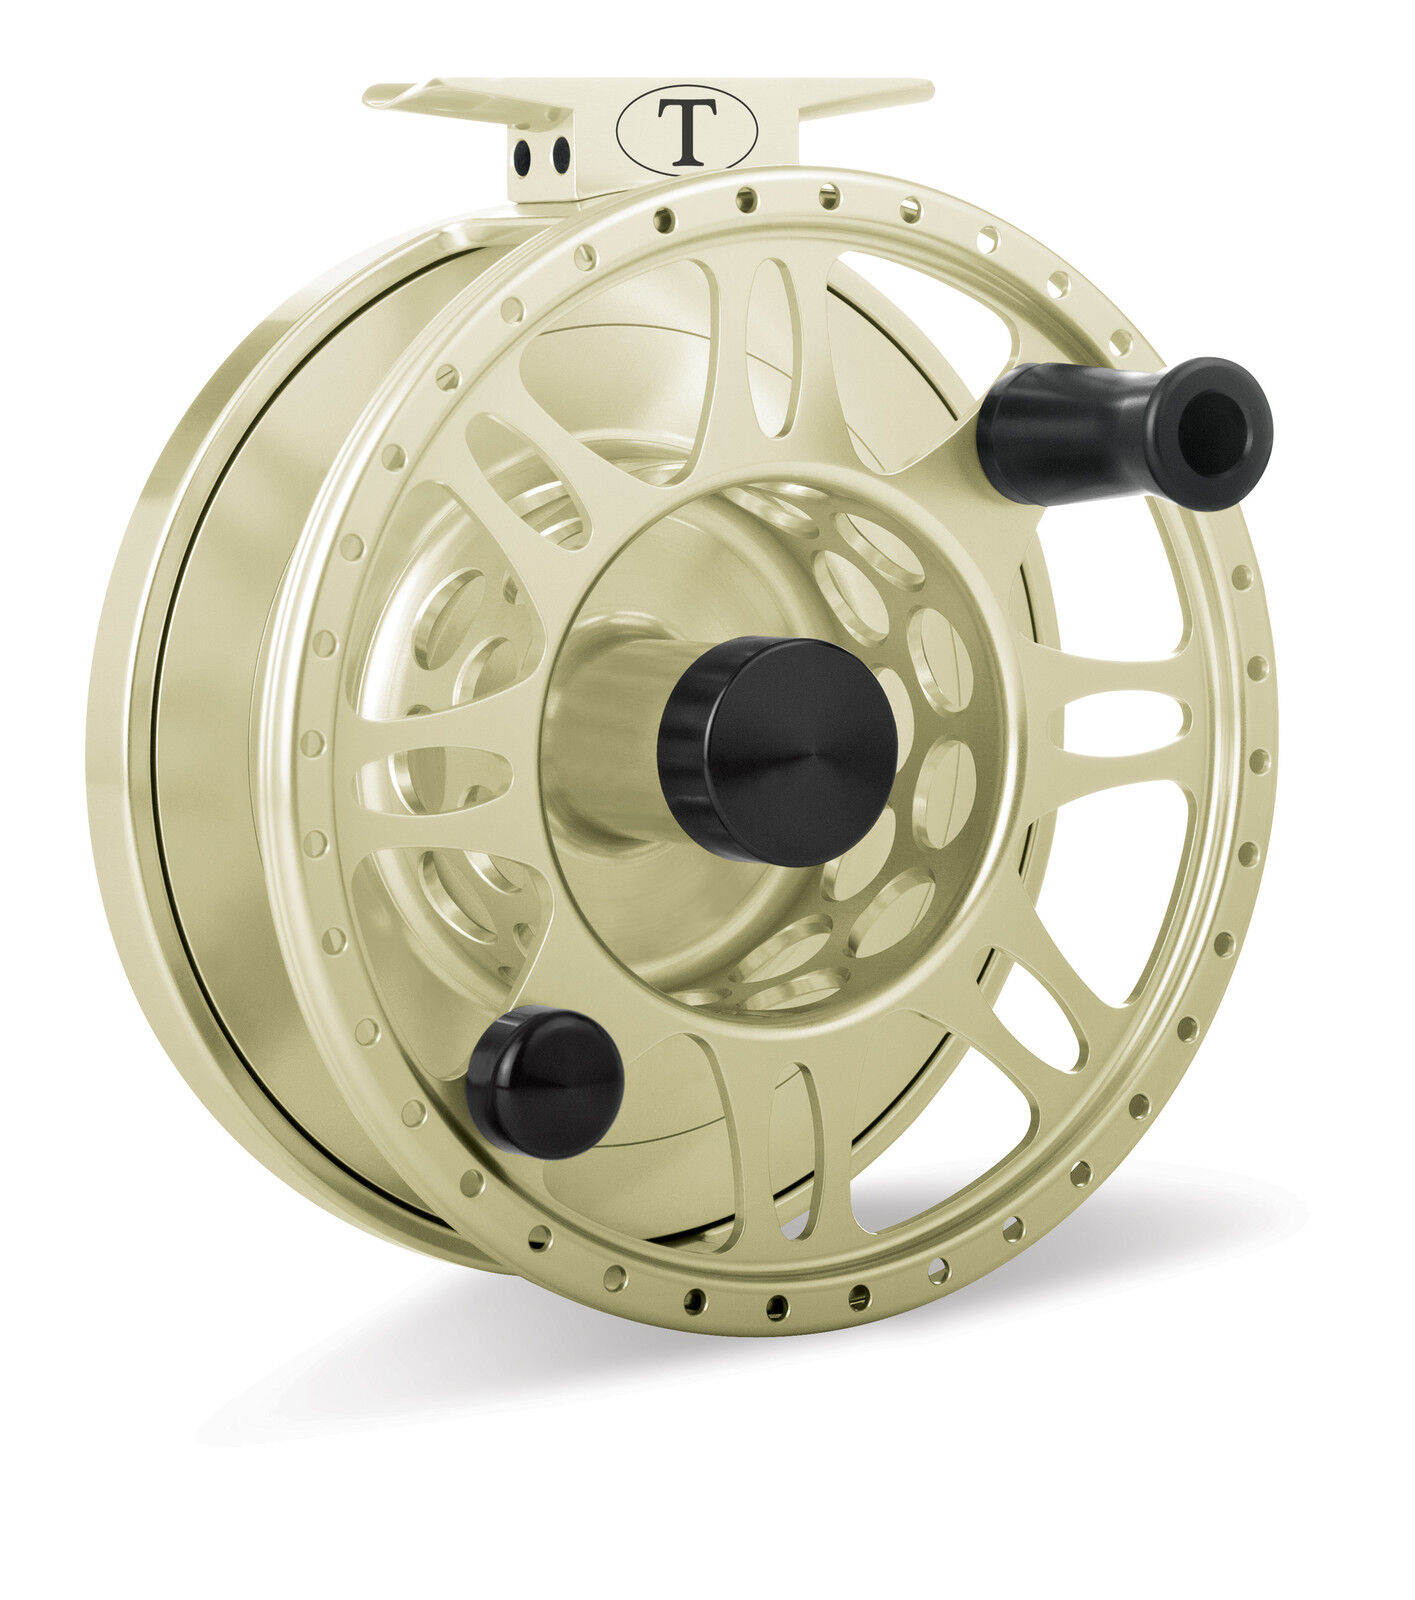 Tibor Everglades Fly Reel, oro, NEW   FREE FLY LINE